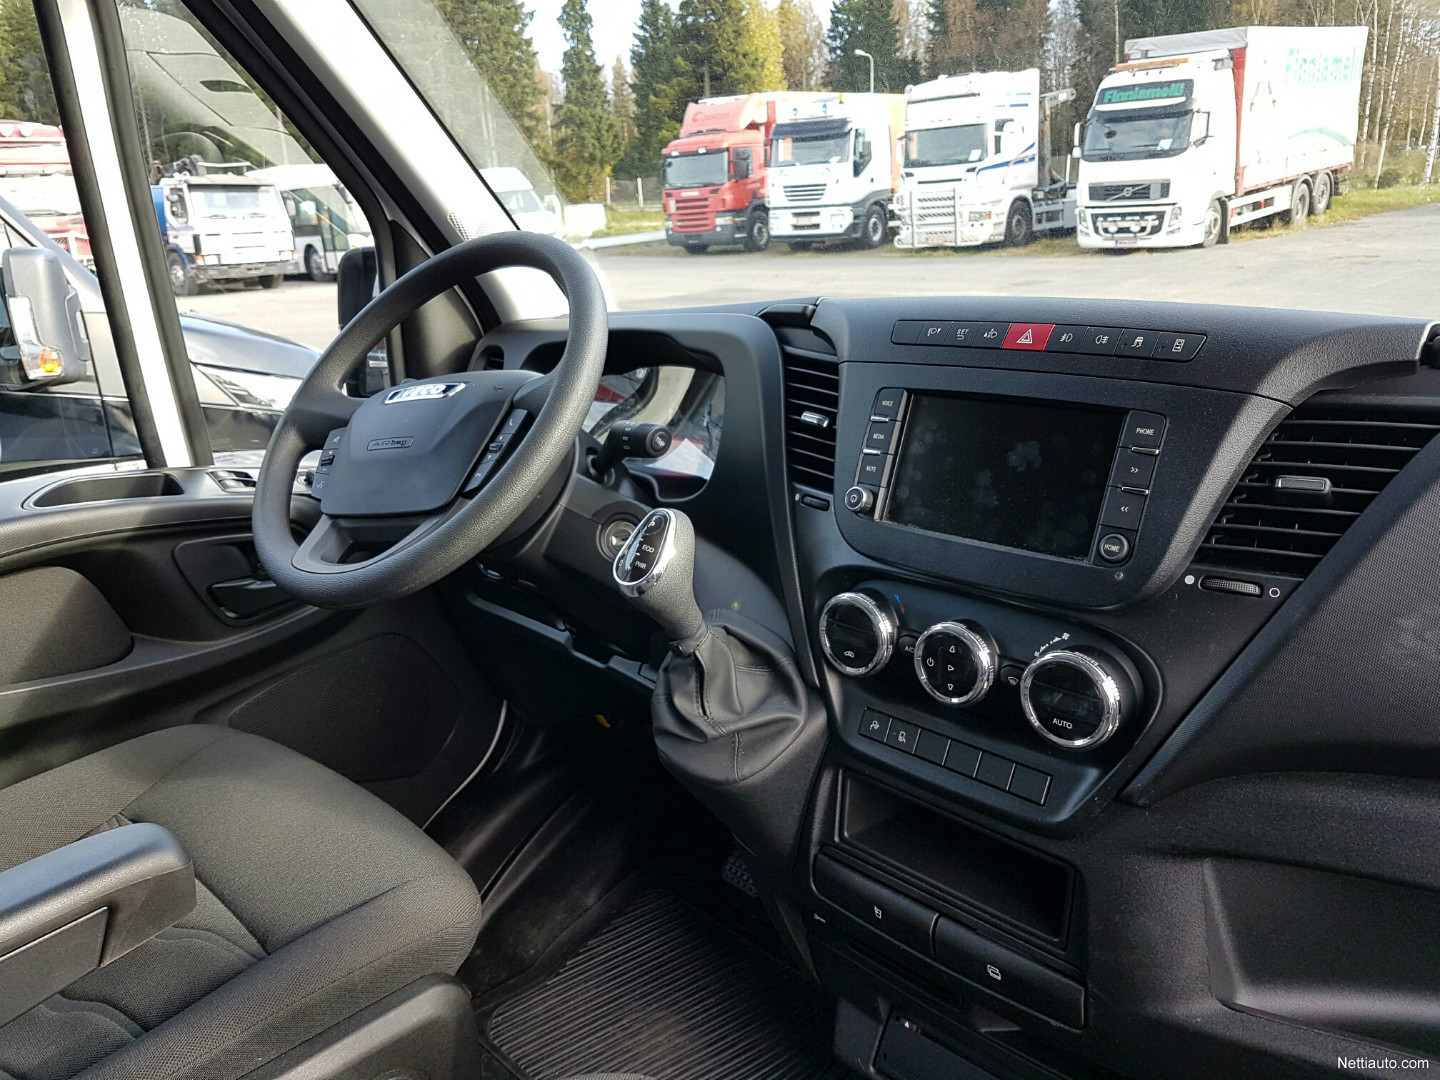 Iveco Daily 35S16A8 16m3 Long - Semihigh 2017 - Used vehicle - Nettiauto